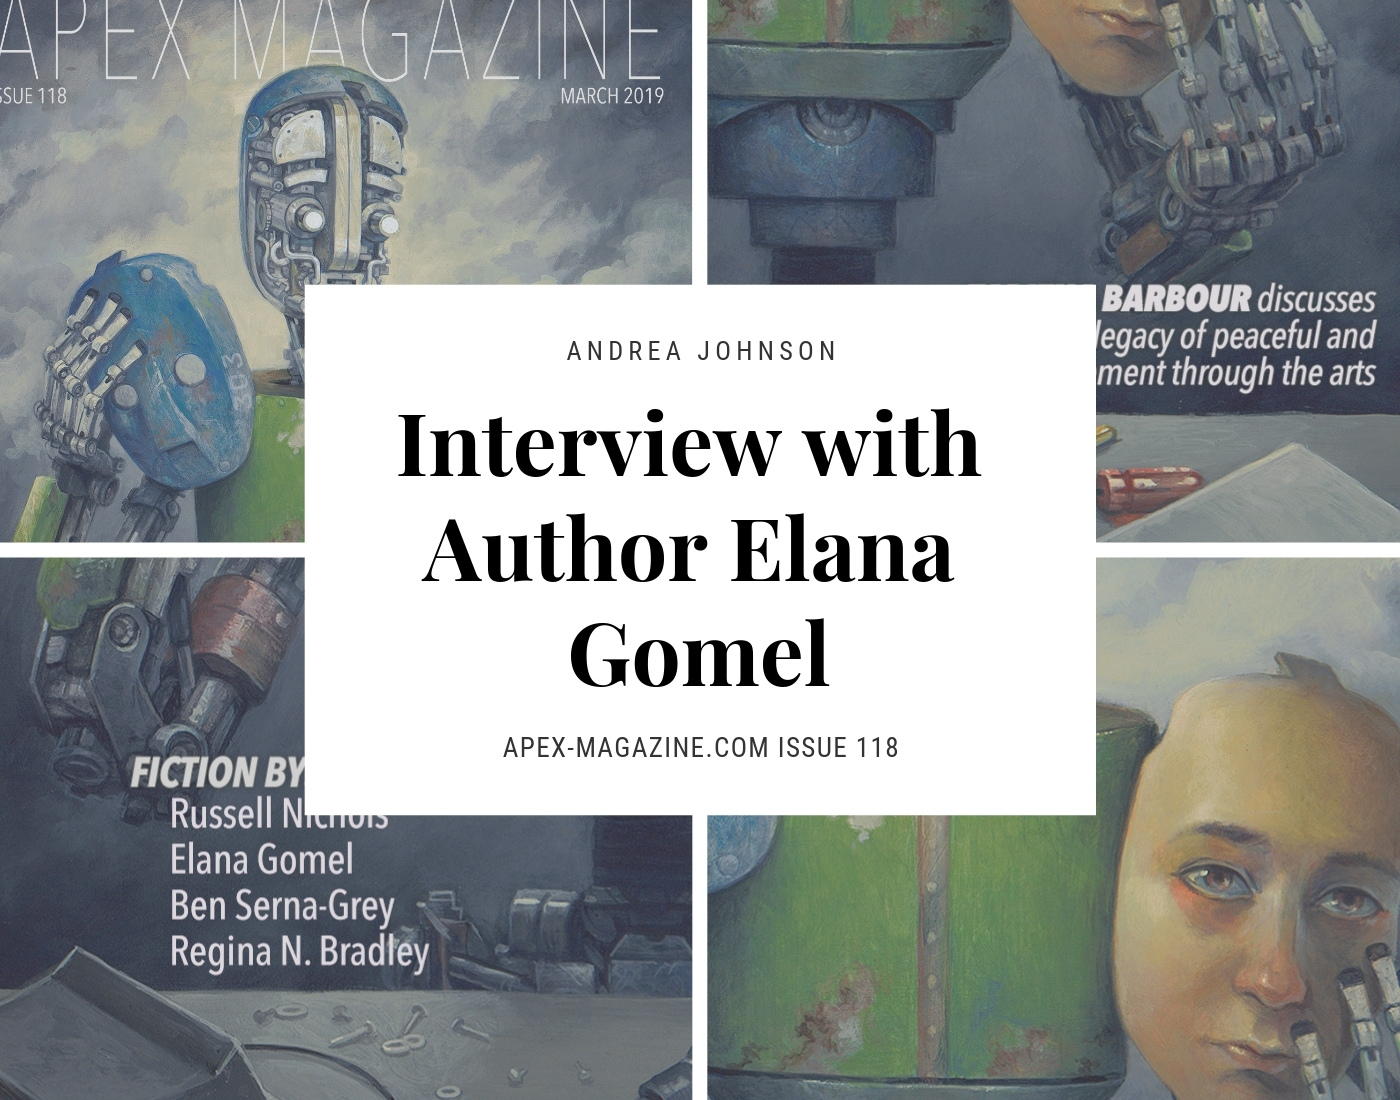 Interview with Author Elana Gomel